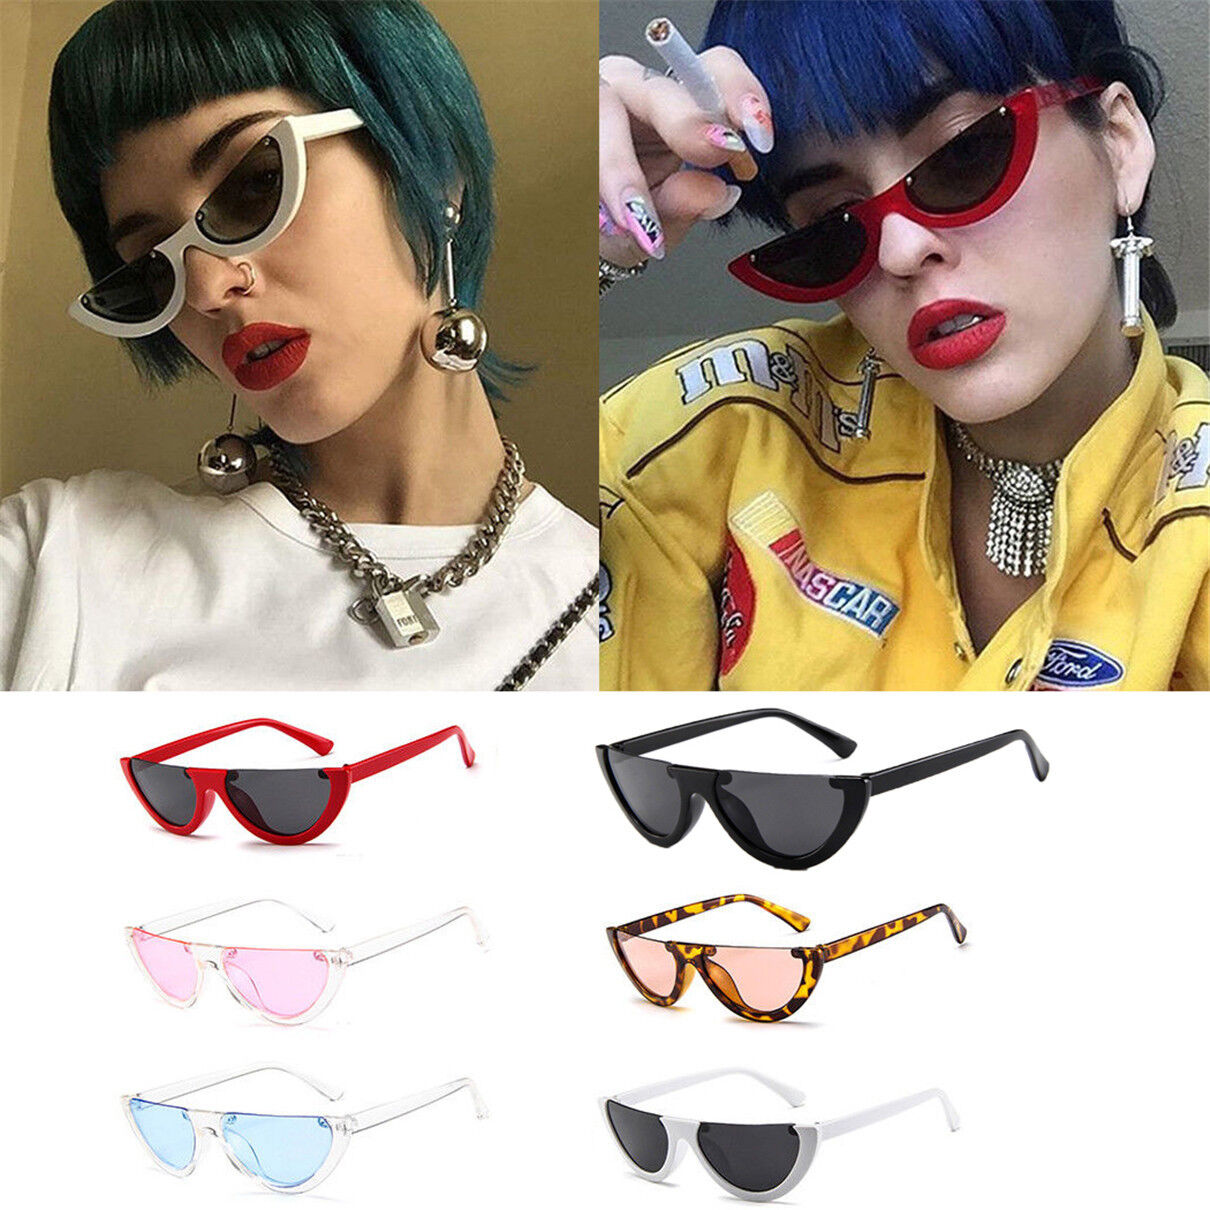 04ea3b1d0c Details about Women Vintage Half Frame Cat Eye Sunglasses Sexy Ladies  Fashion Eyewear Retro EL